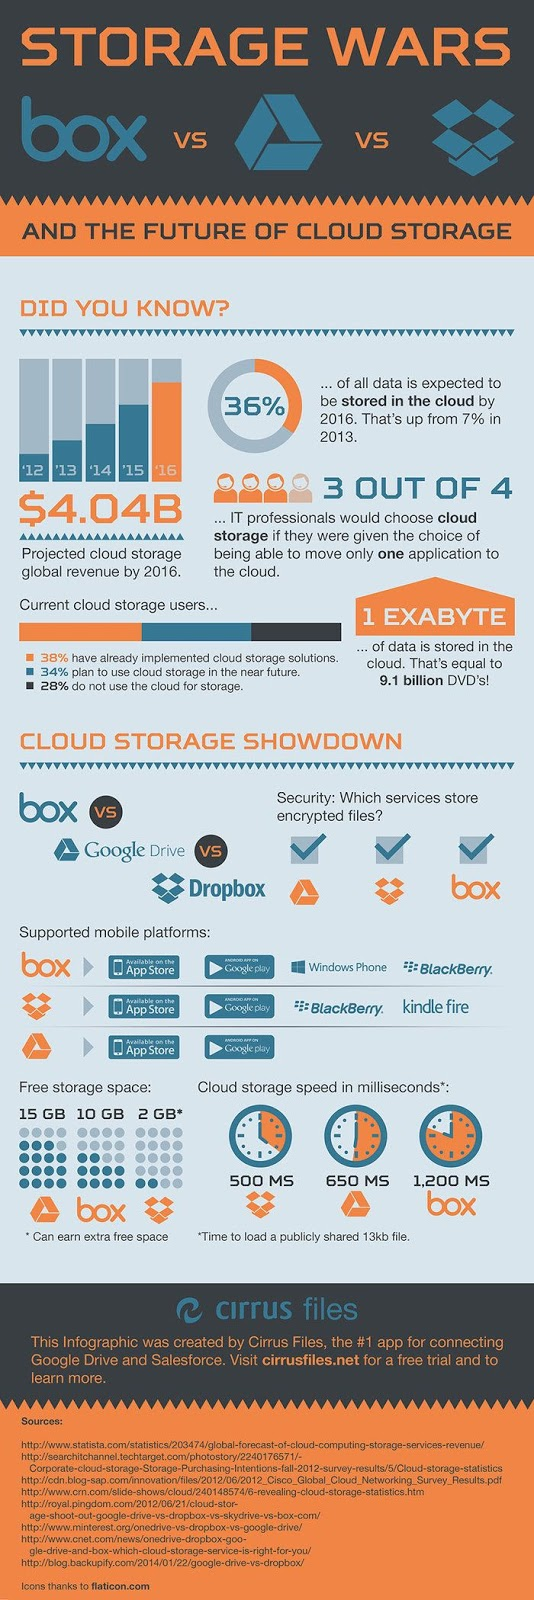 """Cloud Storage Providers - How the Top 3 Stack up Side by Side"""